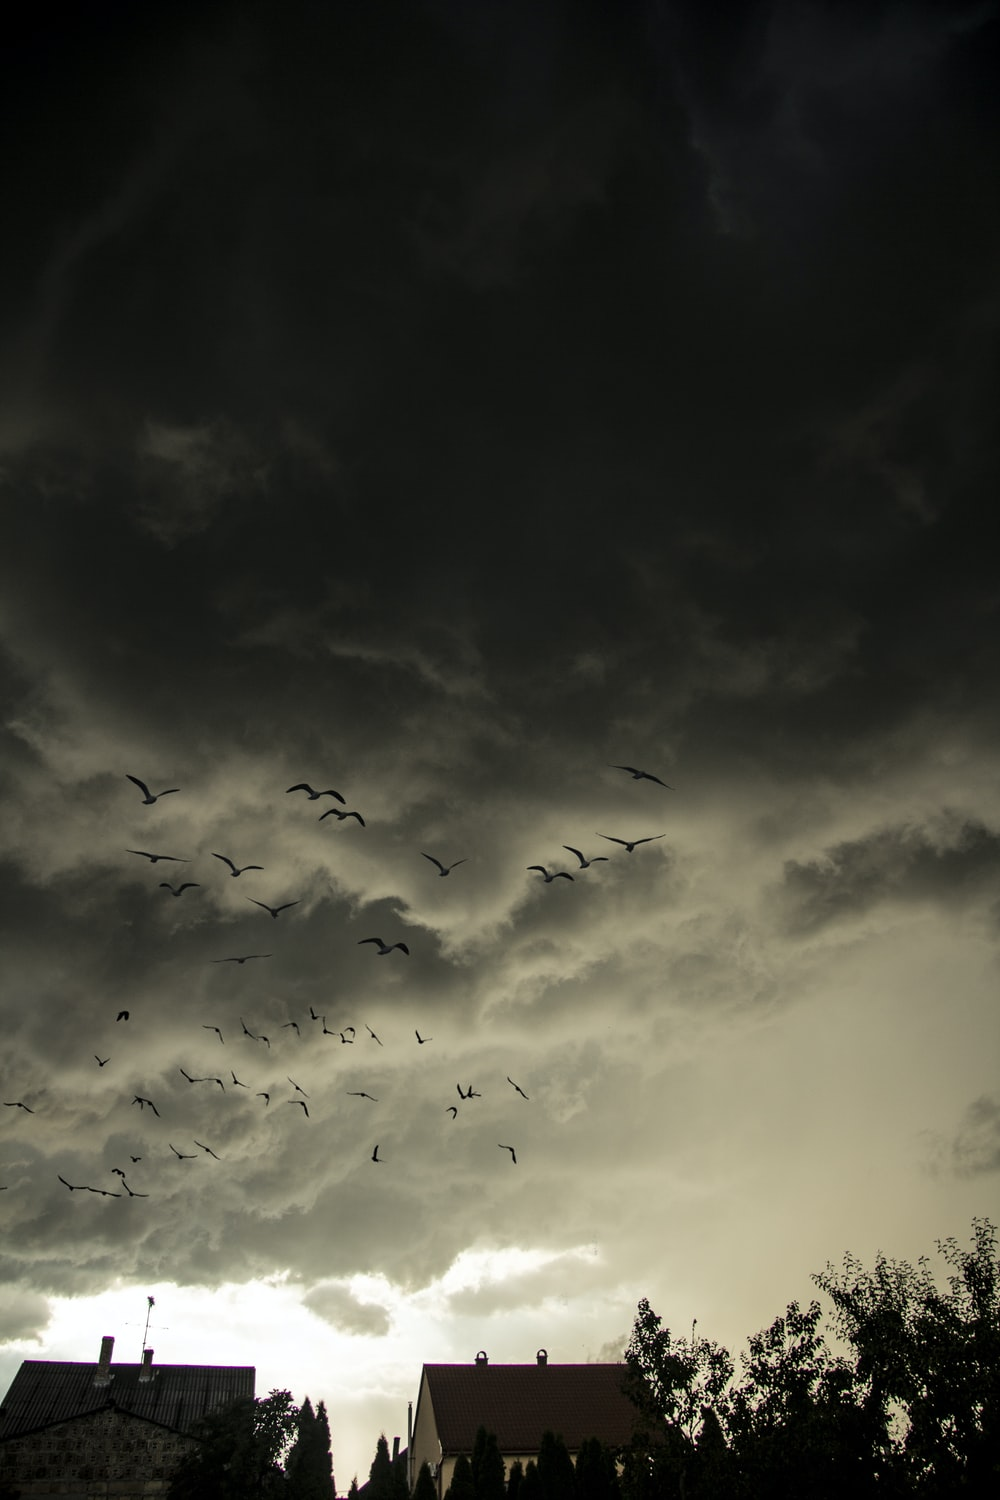 flock of birds flying under cloudy sky during daytime